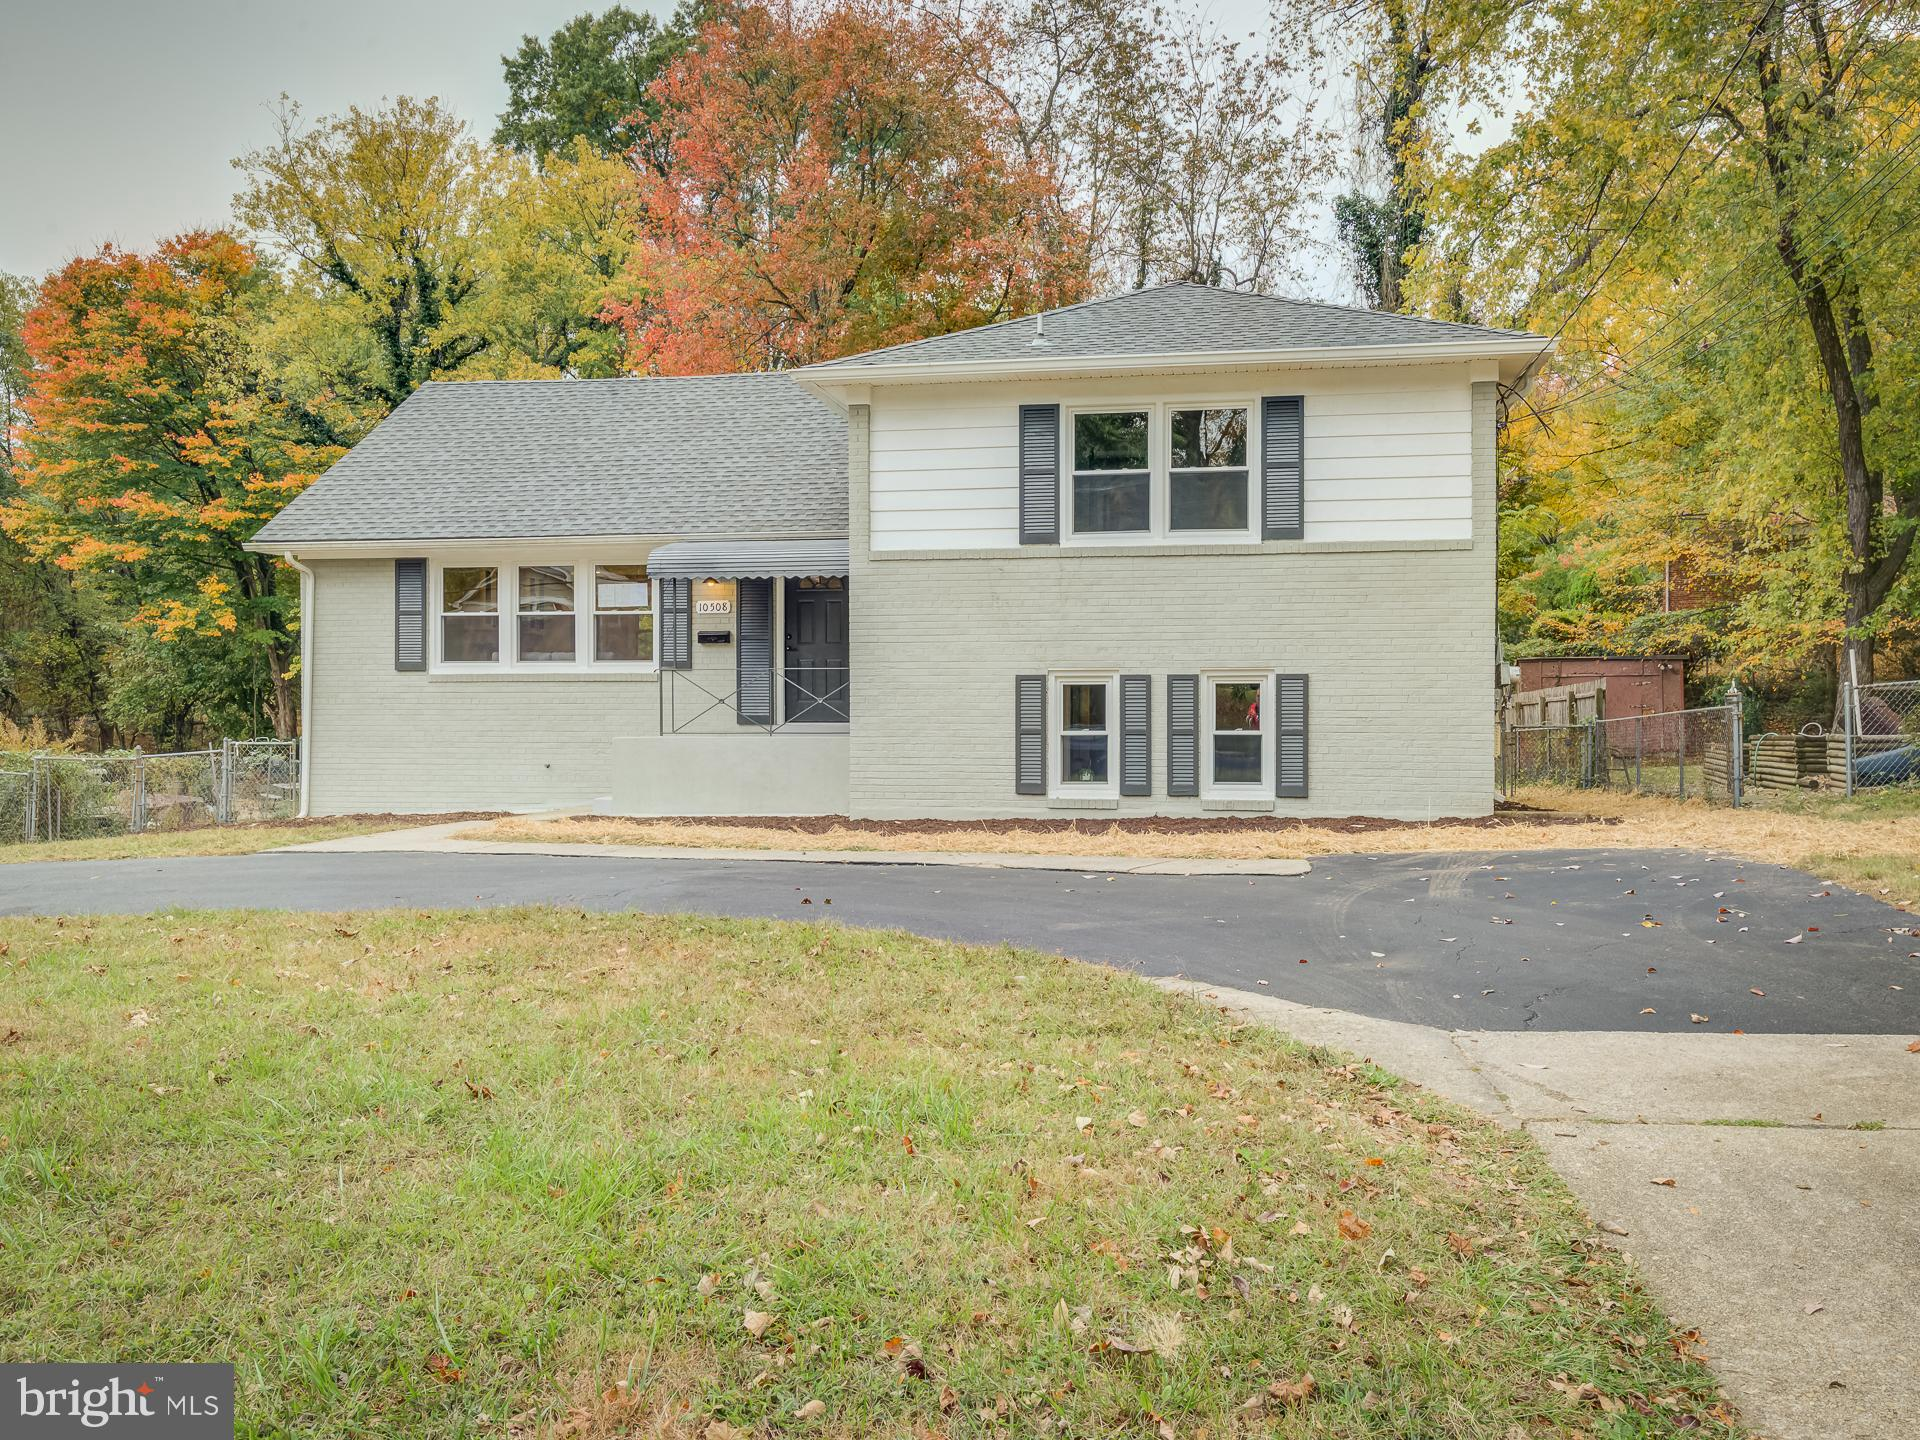 10508 PINEDALE DRIVE, SILVER SPRING, MD 20901